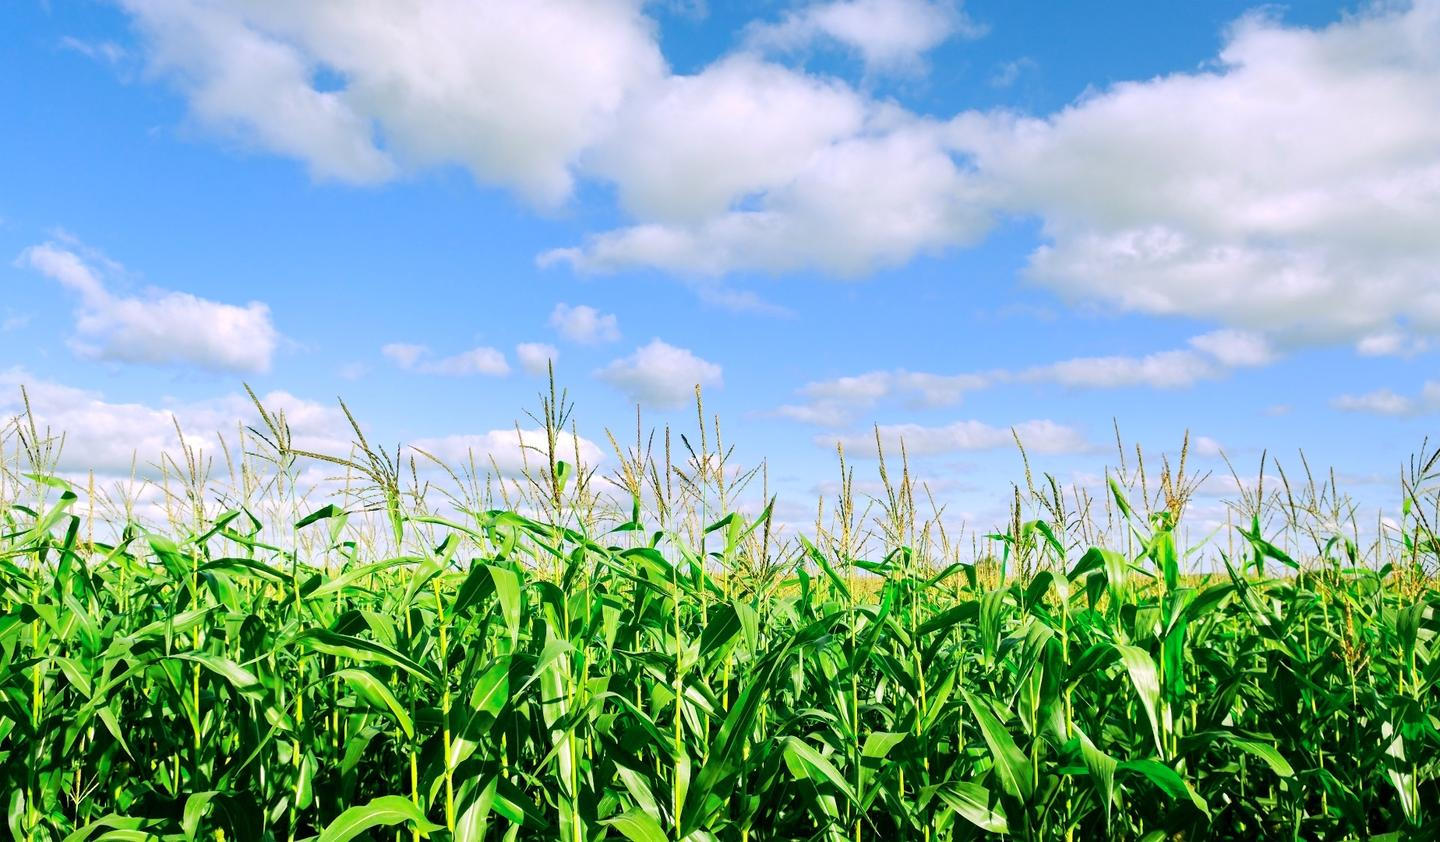 The system is being used to develop drought-resistant corn and other crops